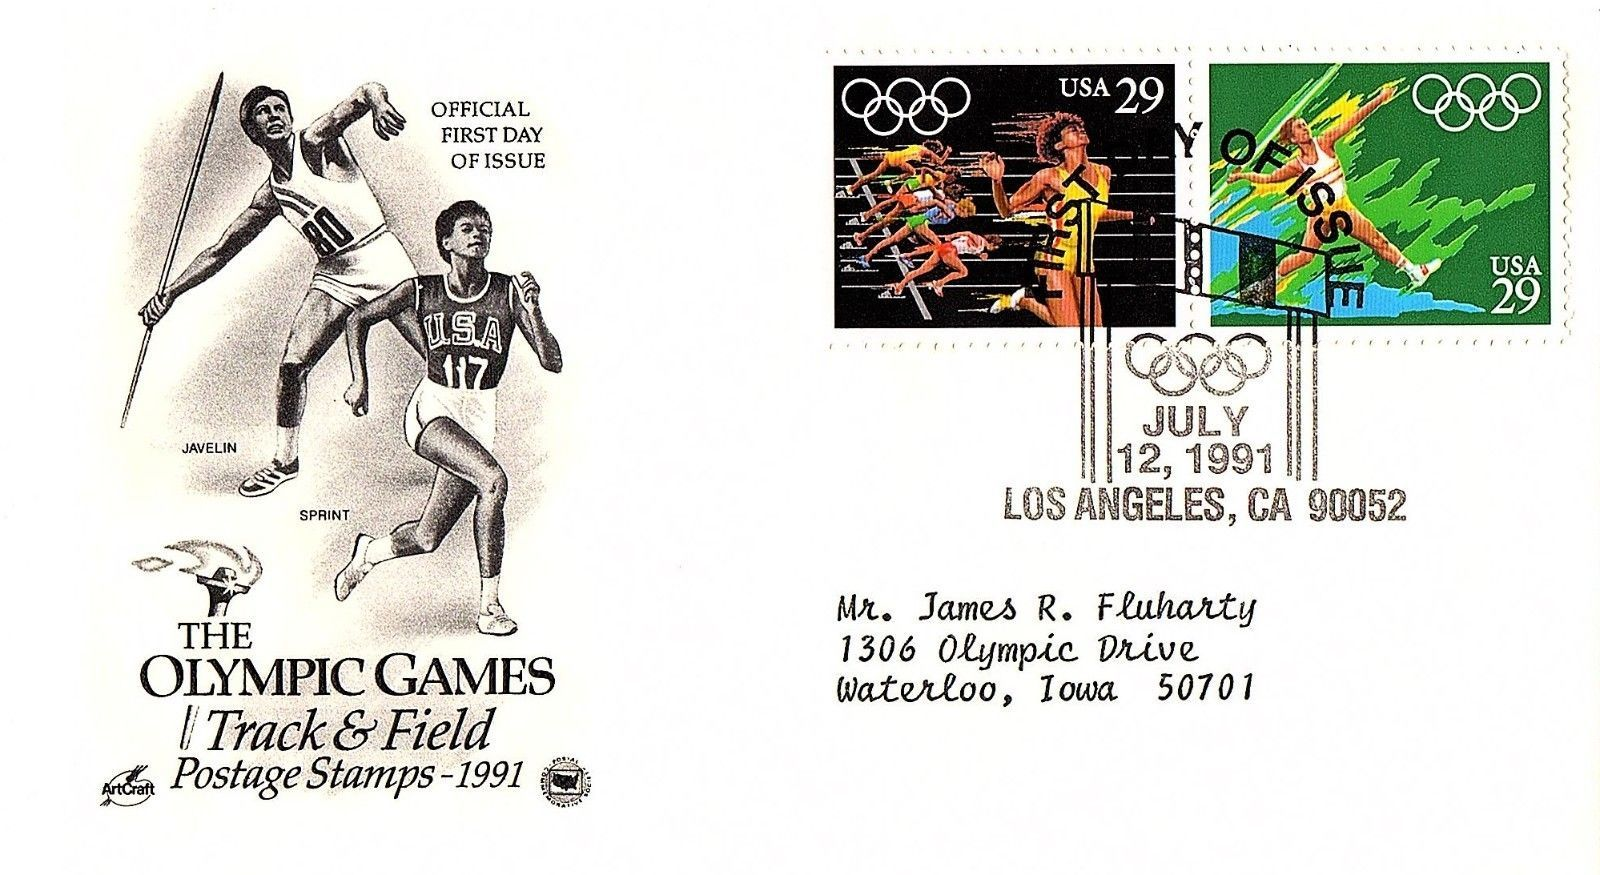 July 12, 1991 First Day of Issue, Postal Society Cover, Olympic Track & Field #2